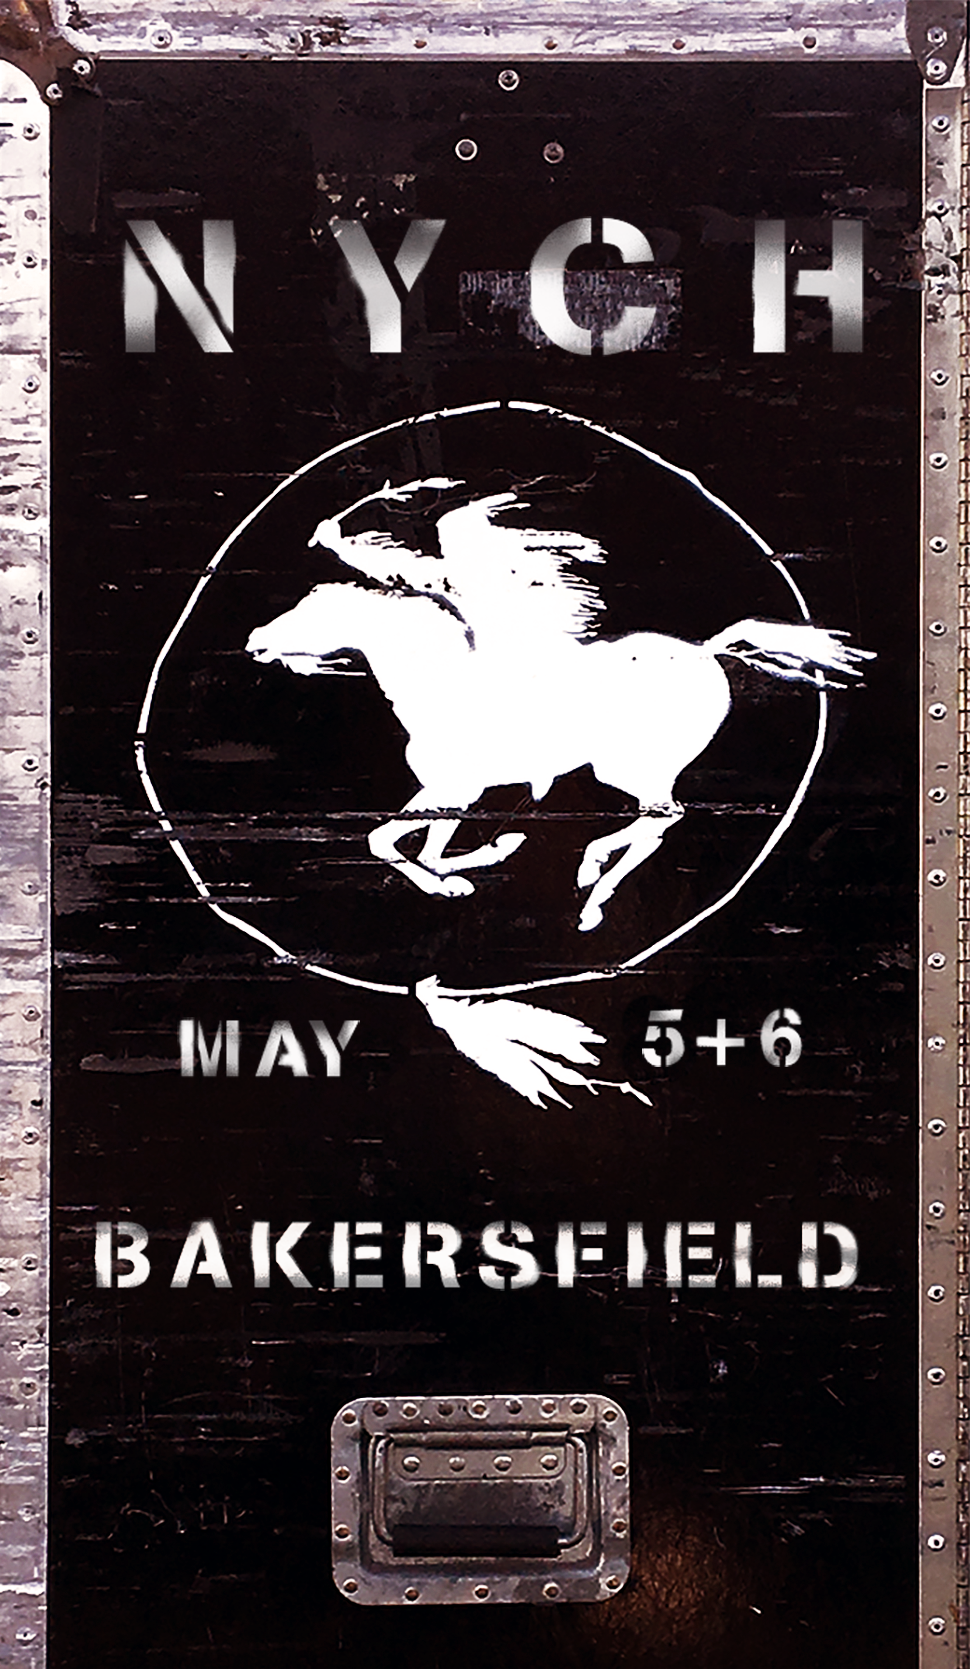 BakersfieldAd May5+6.970